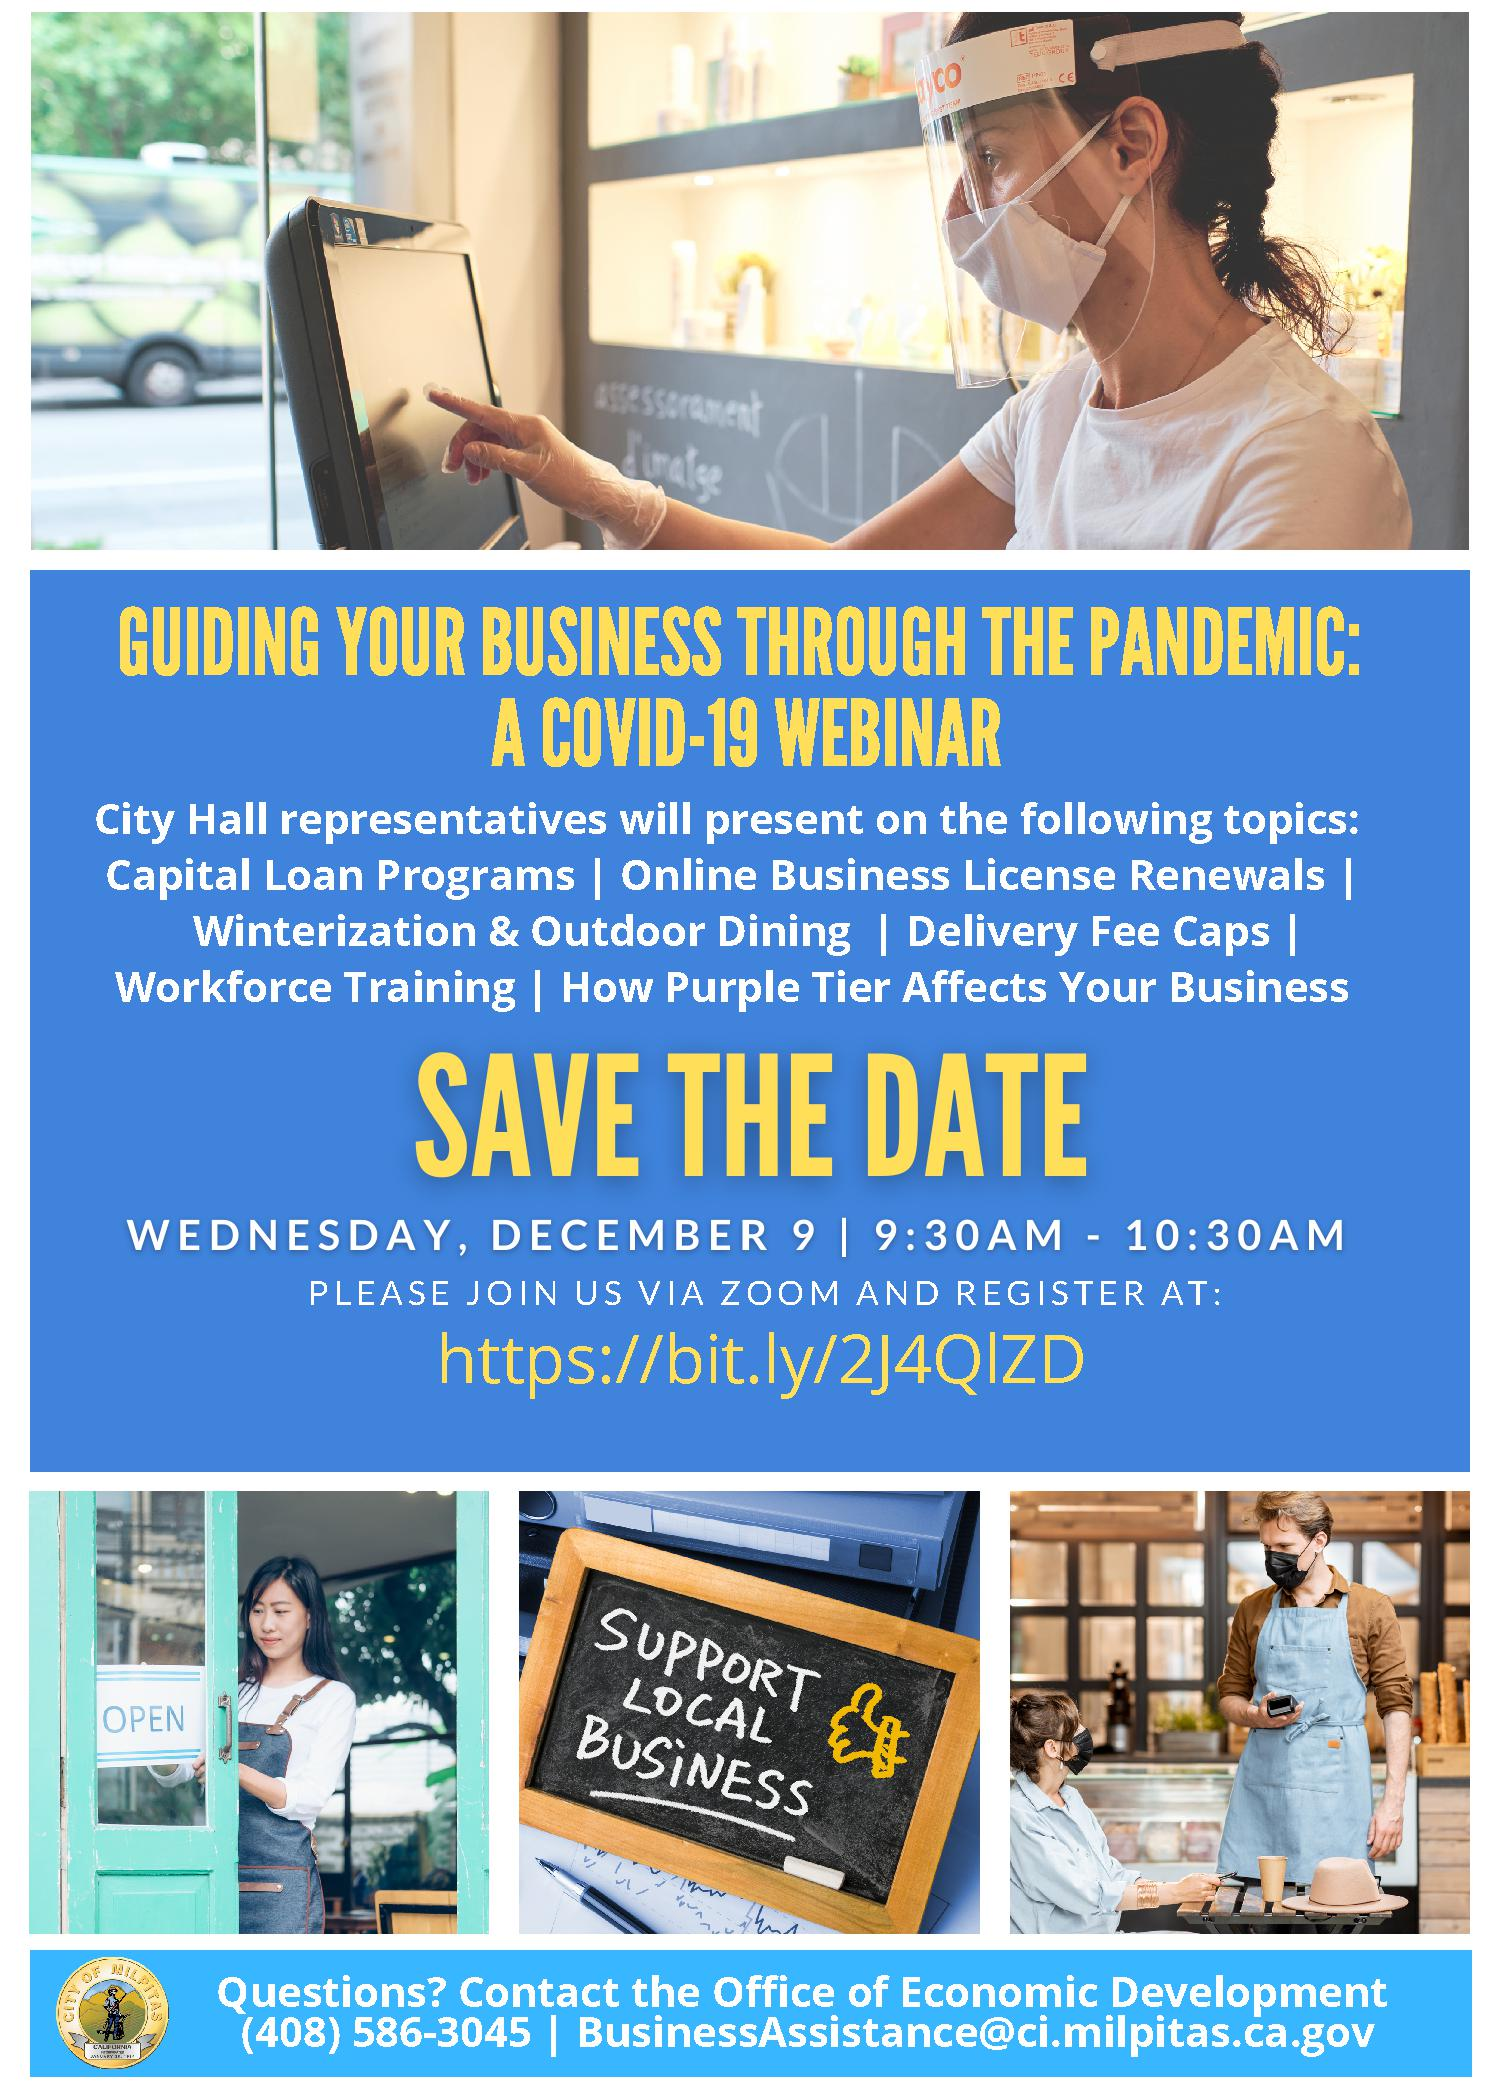 12/09 Milpitas Economic Development Office COVID-19 Business Webinar